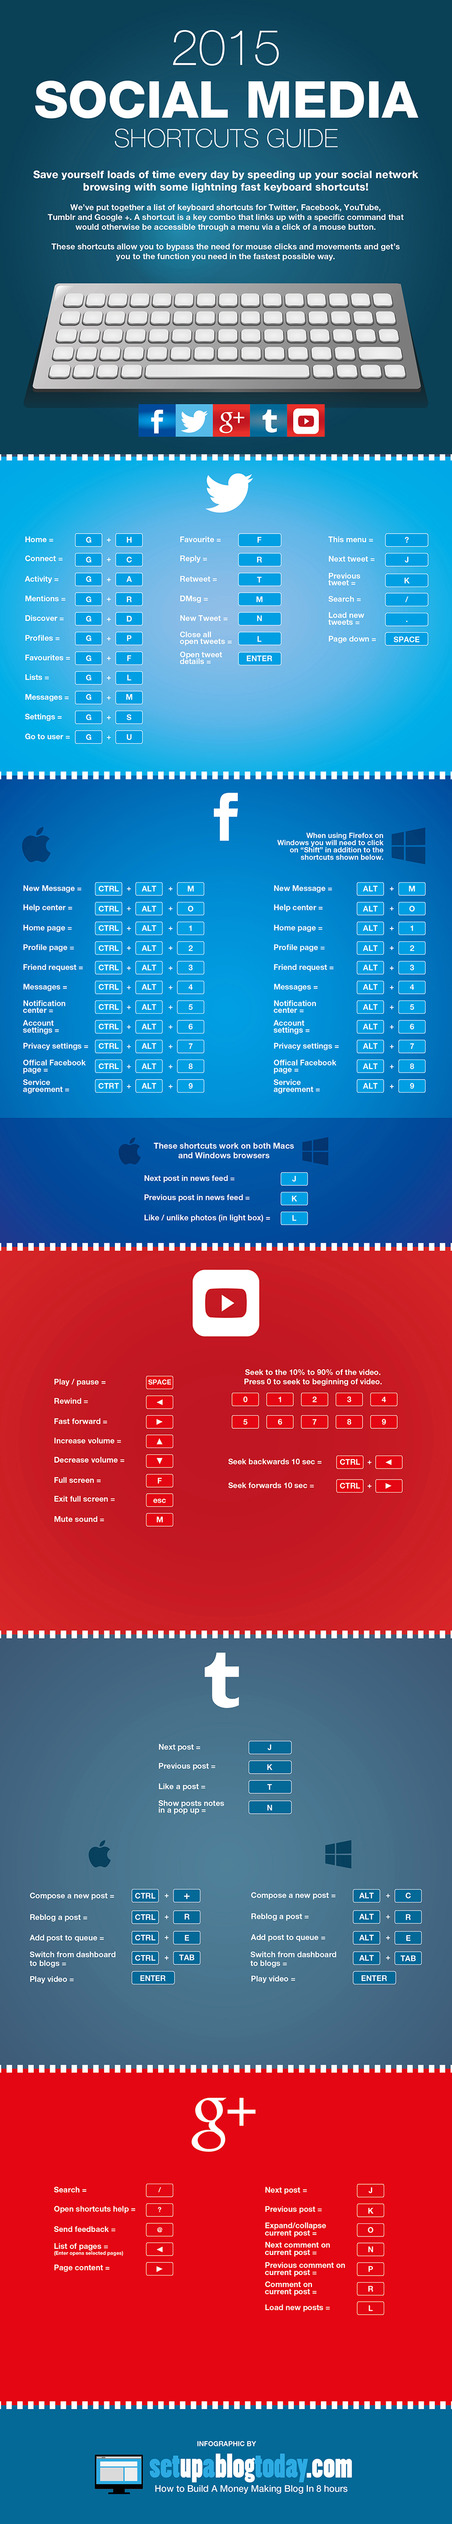 Use These Social-Media Keyboard Shortcuts to Improve Your Productivity (Infographic)